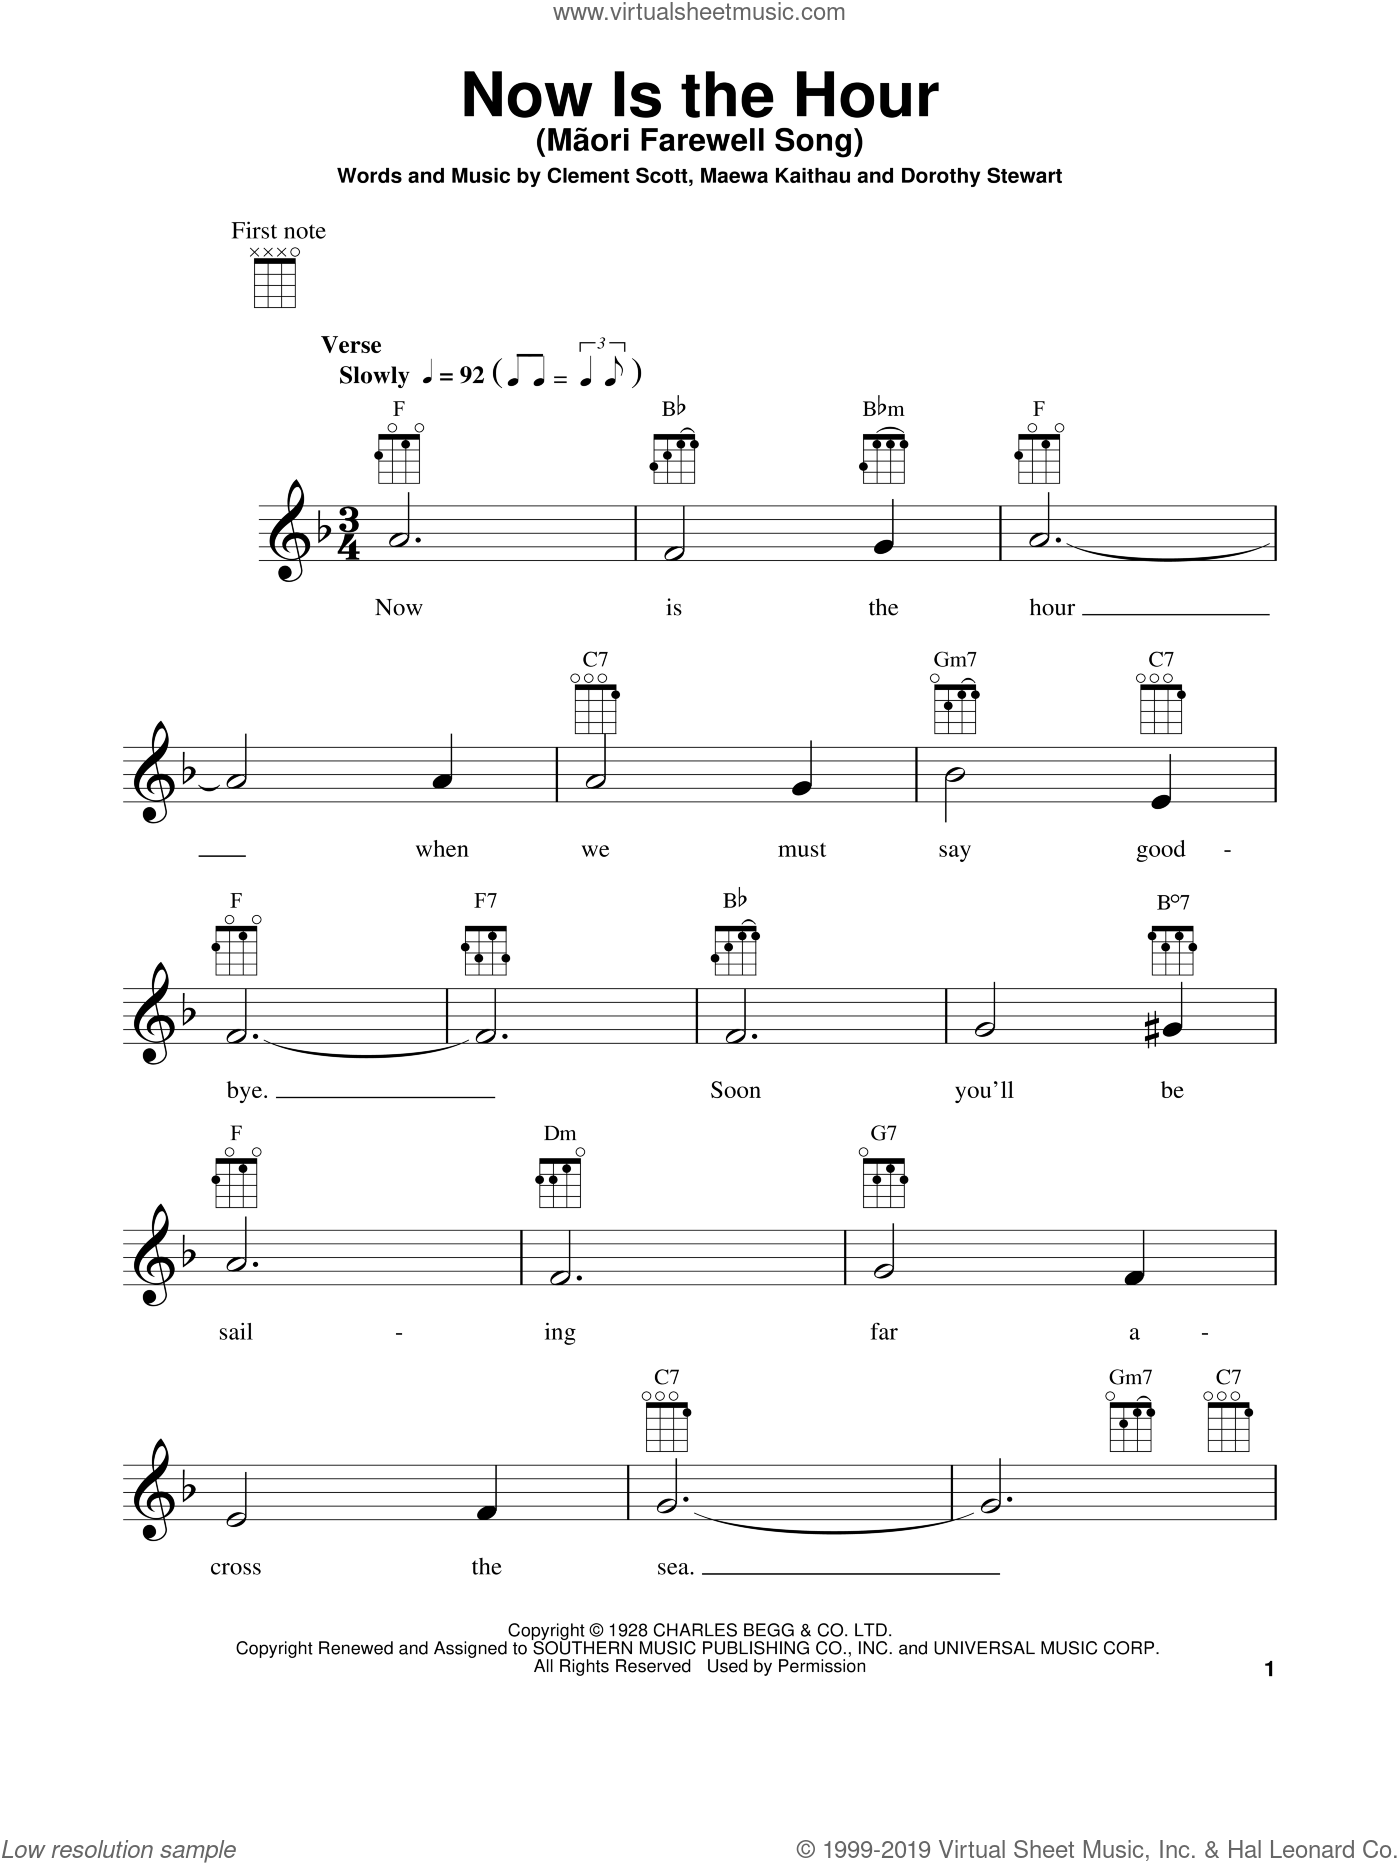 Now Is The Hour (Maori Farewell Song) sheet music for ukulele by Bing Crosby, Clement Scott, Dorothy Stewart and Maewa Kaithau, intermediate. Score Image Preview.